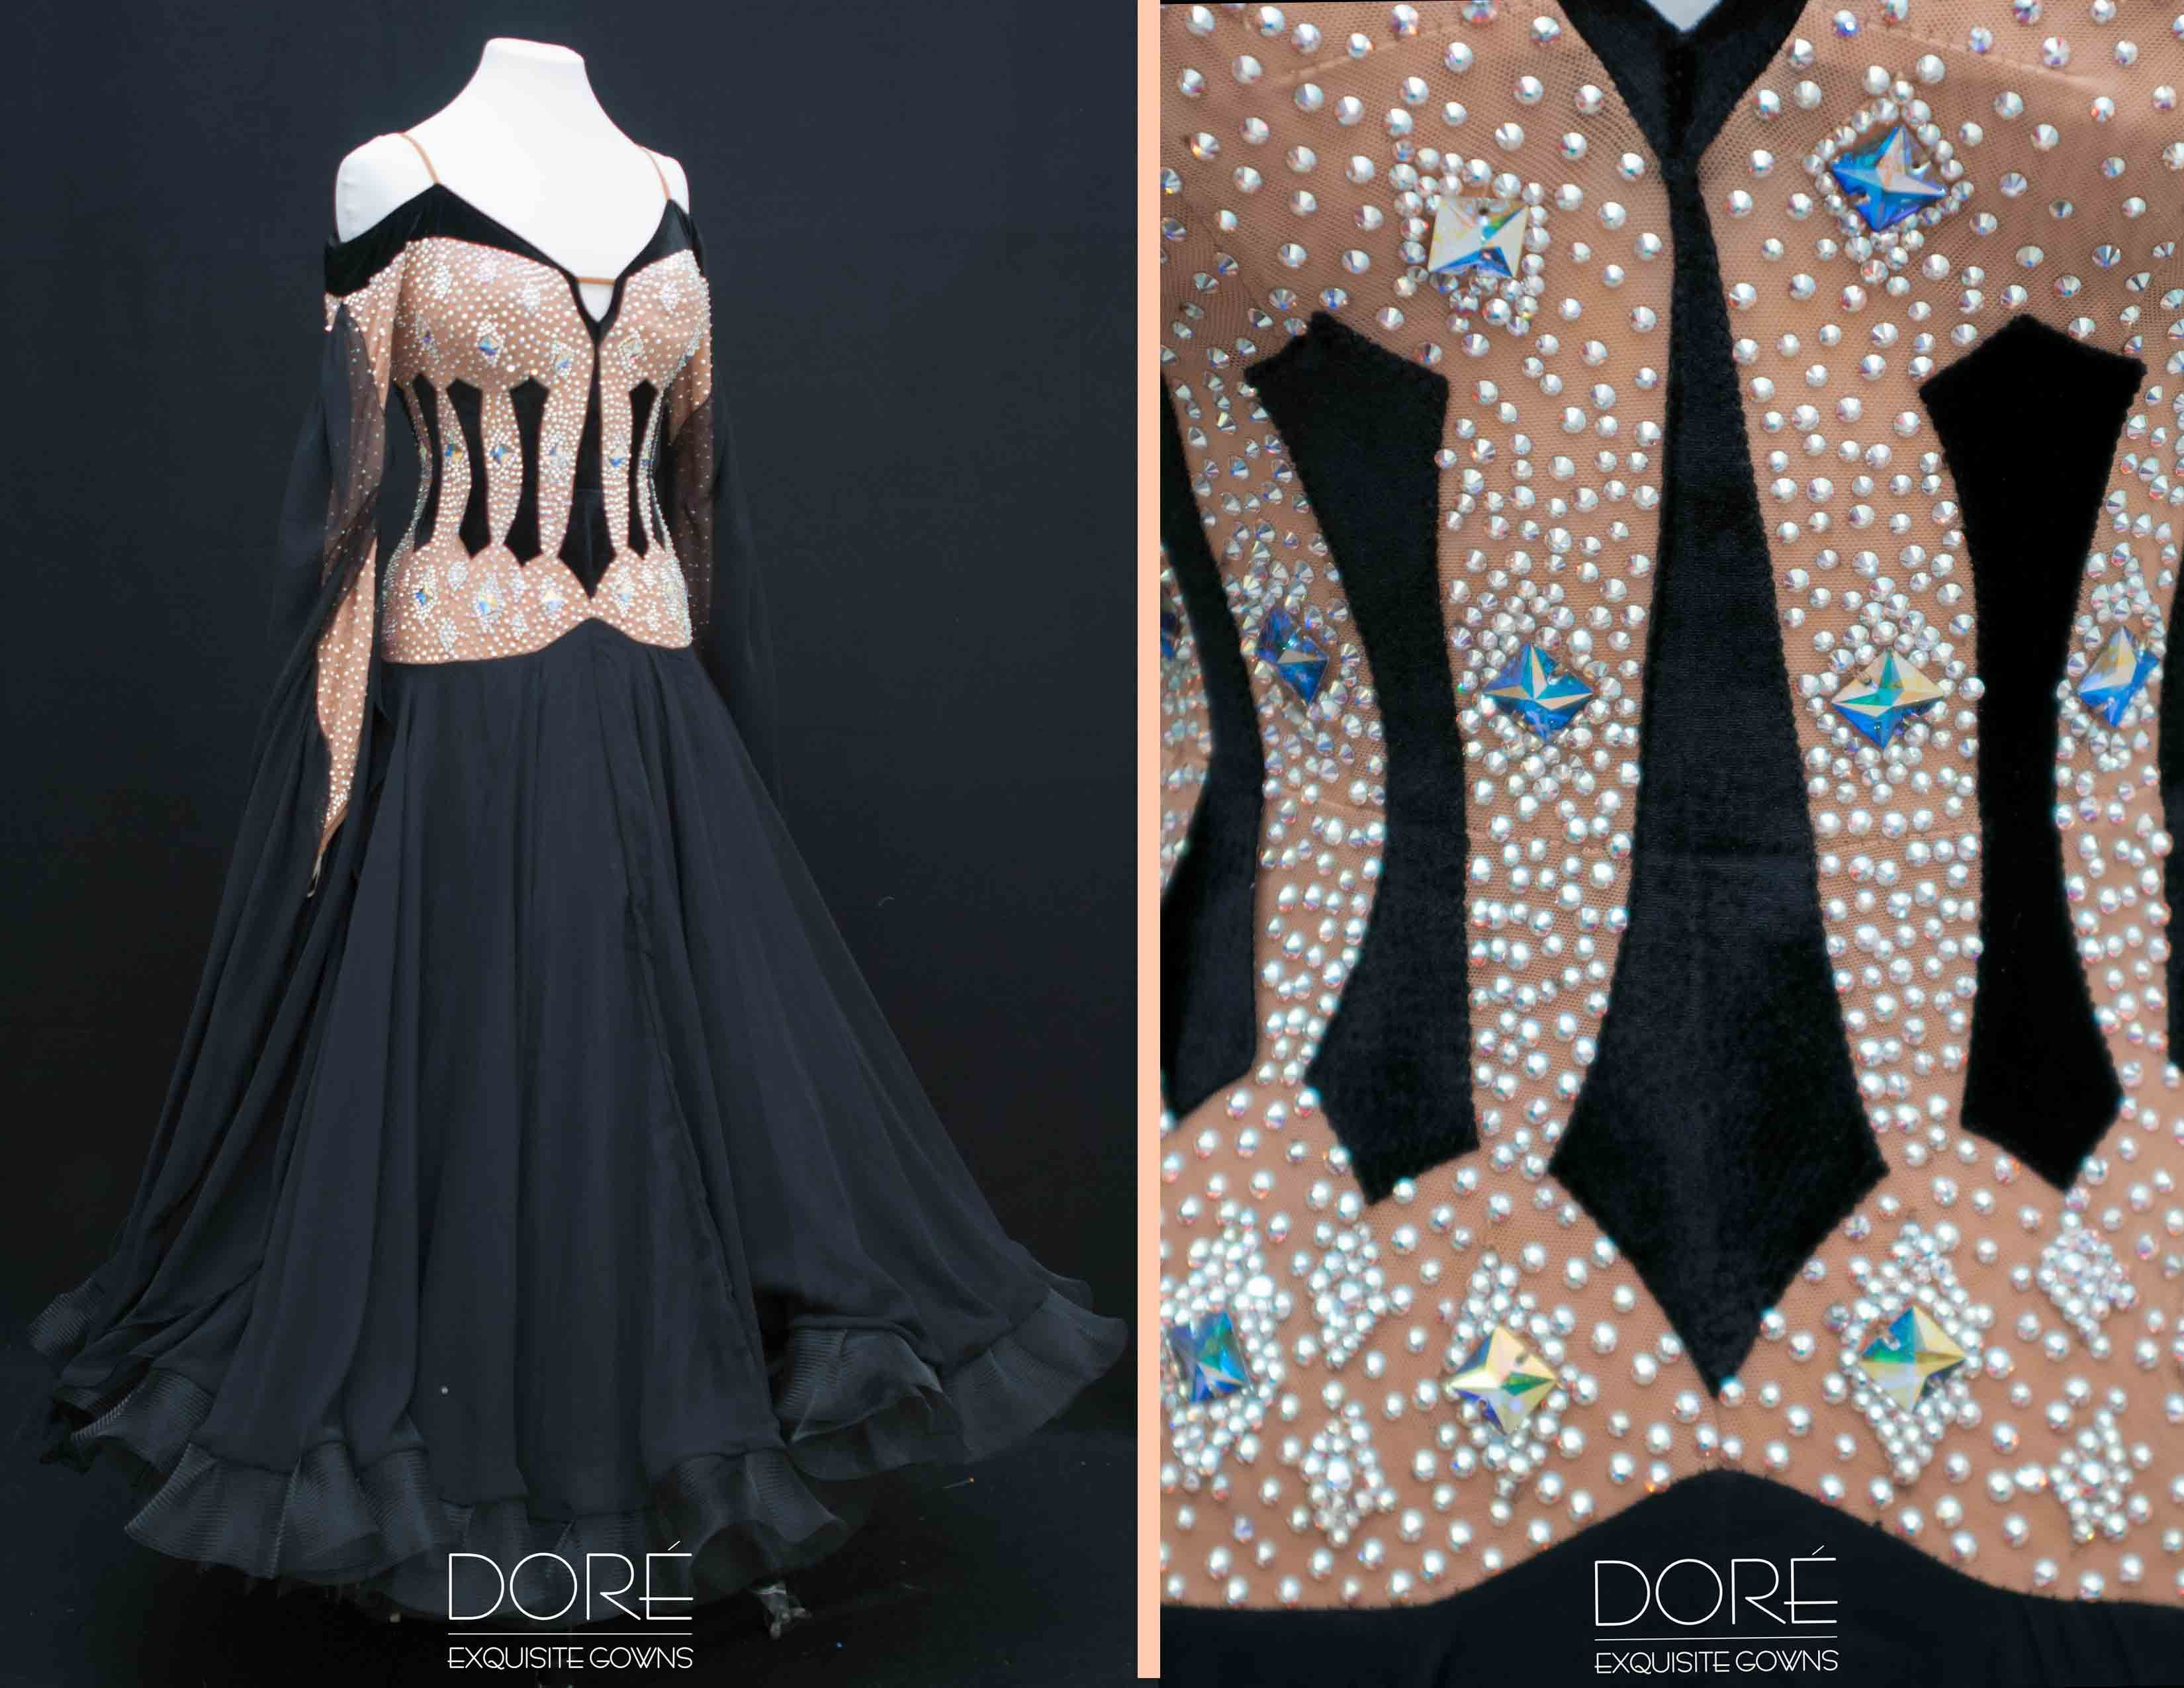 Nude and Black Velvet Accents Standard with Black Chiffon Godets and Floats